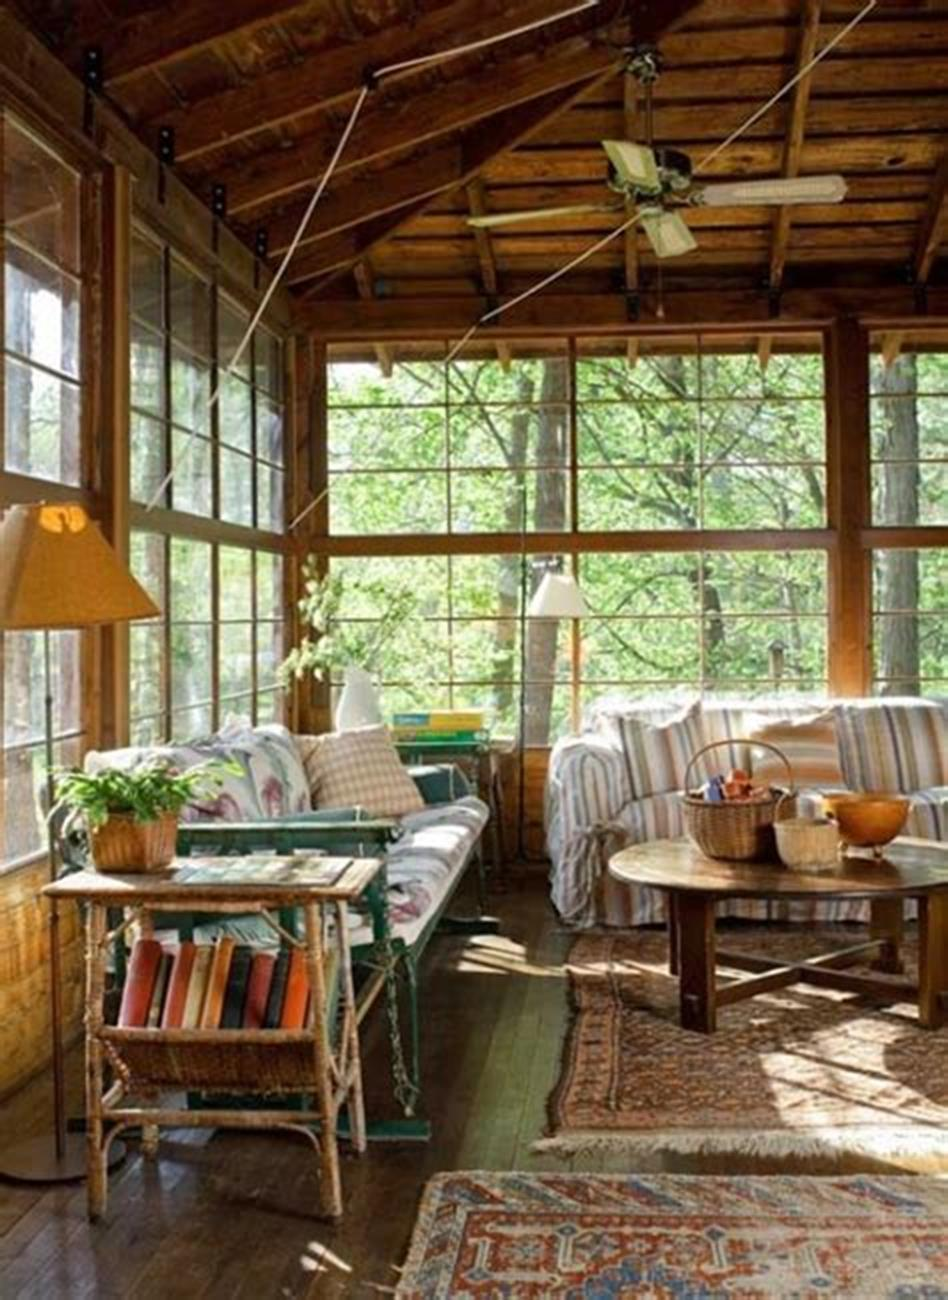 50 Most Popular Affordable Sunroom Design Ideas on a Budget 47